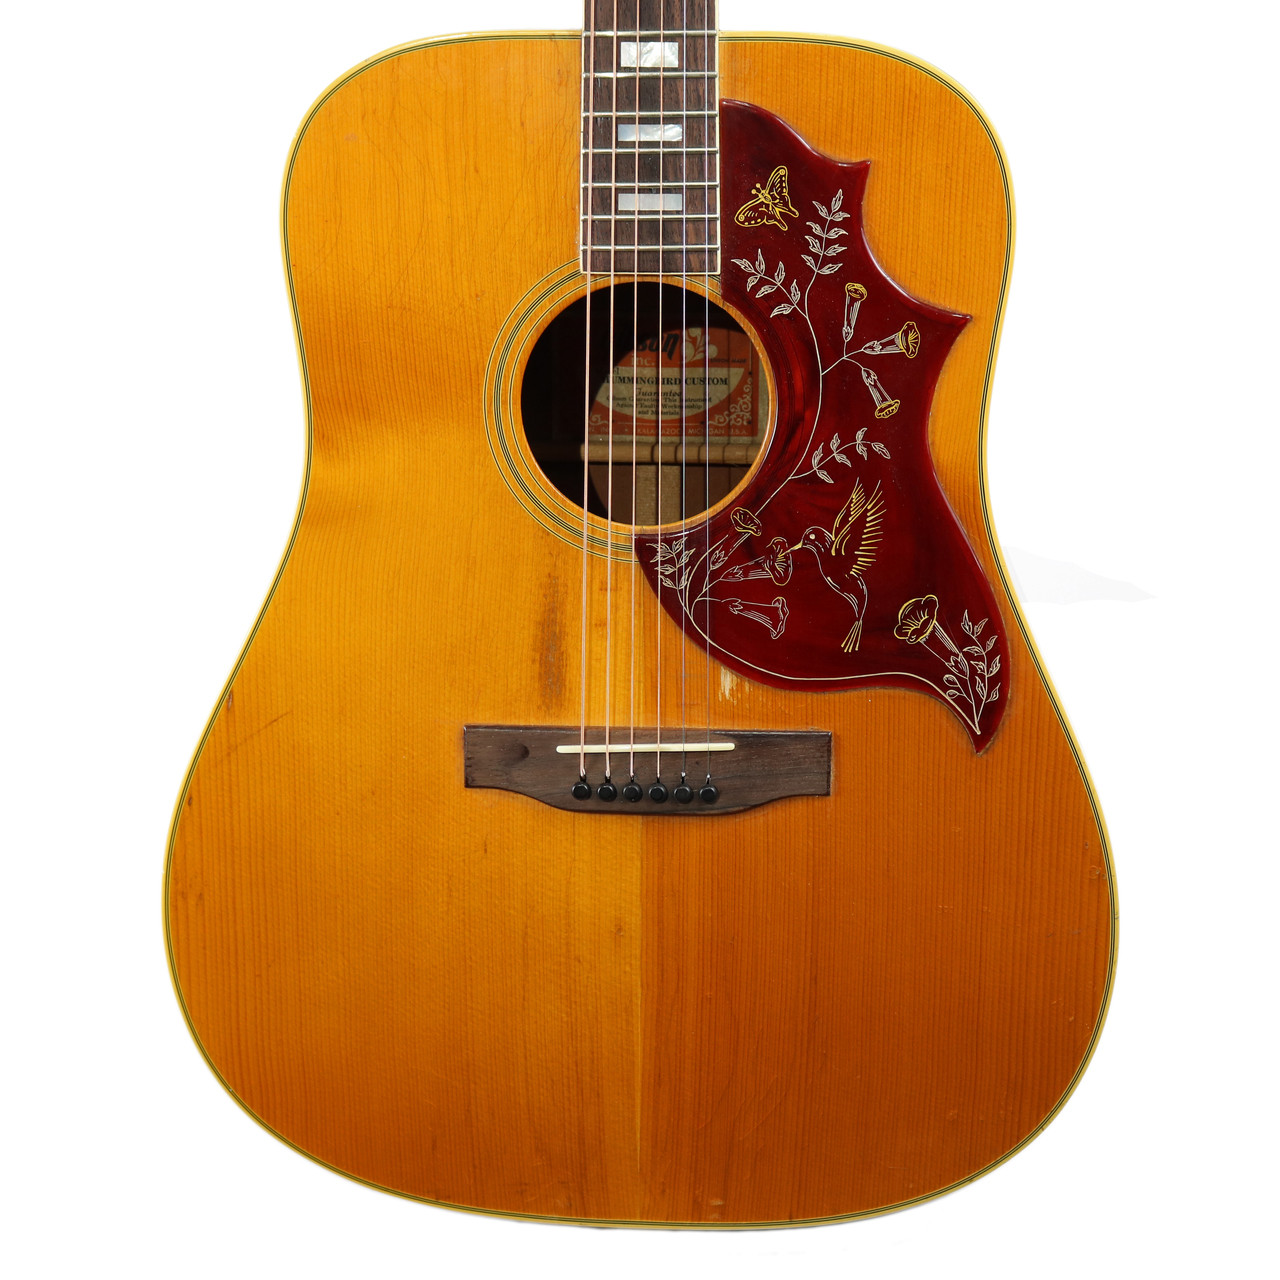 vintage 1975 gibson hummingbird dreadnought acoustic guitar natural finish ebay. Black Bedroom Furniture Sets. Home Design Ideas